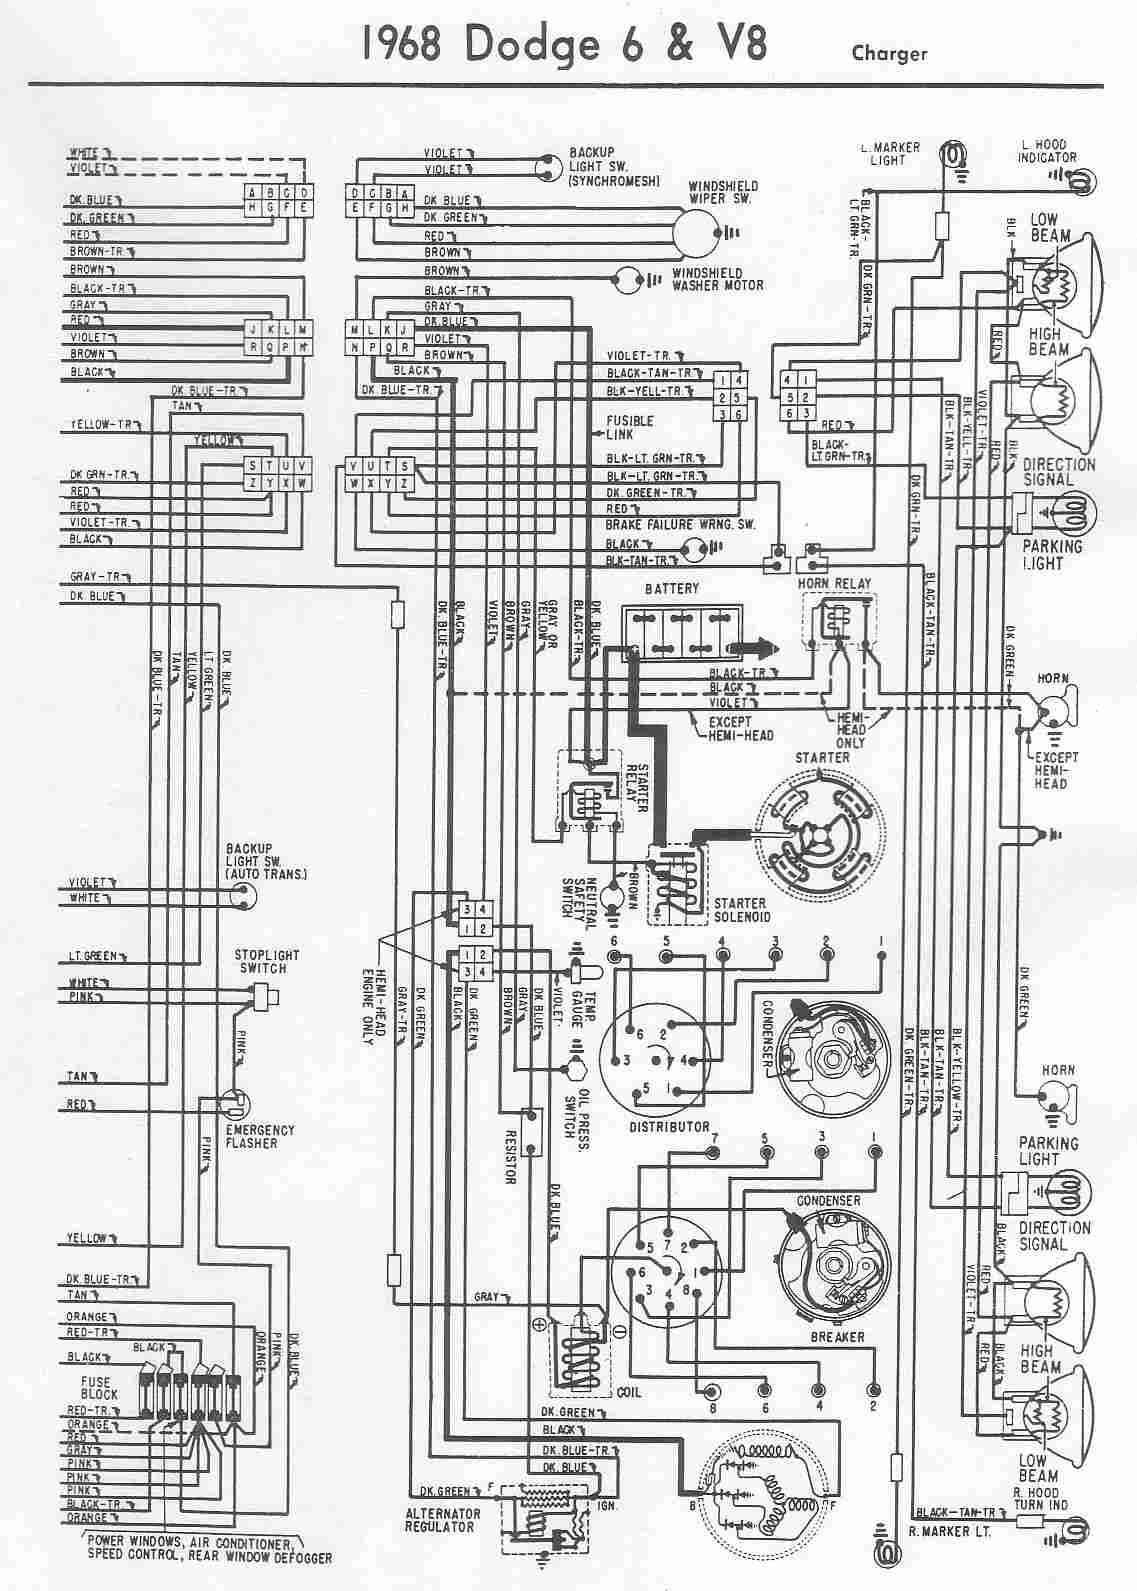 Dodge Car Manuals Wiring Diagrams Pdf Fault Codes 1983 Volkswagen Vanagon Repair Manual Download